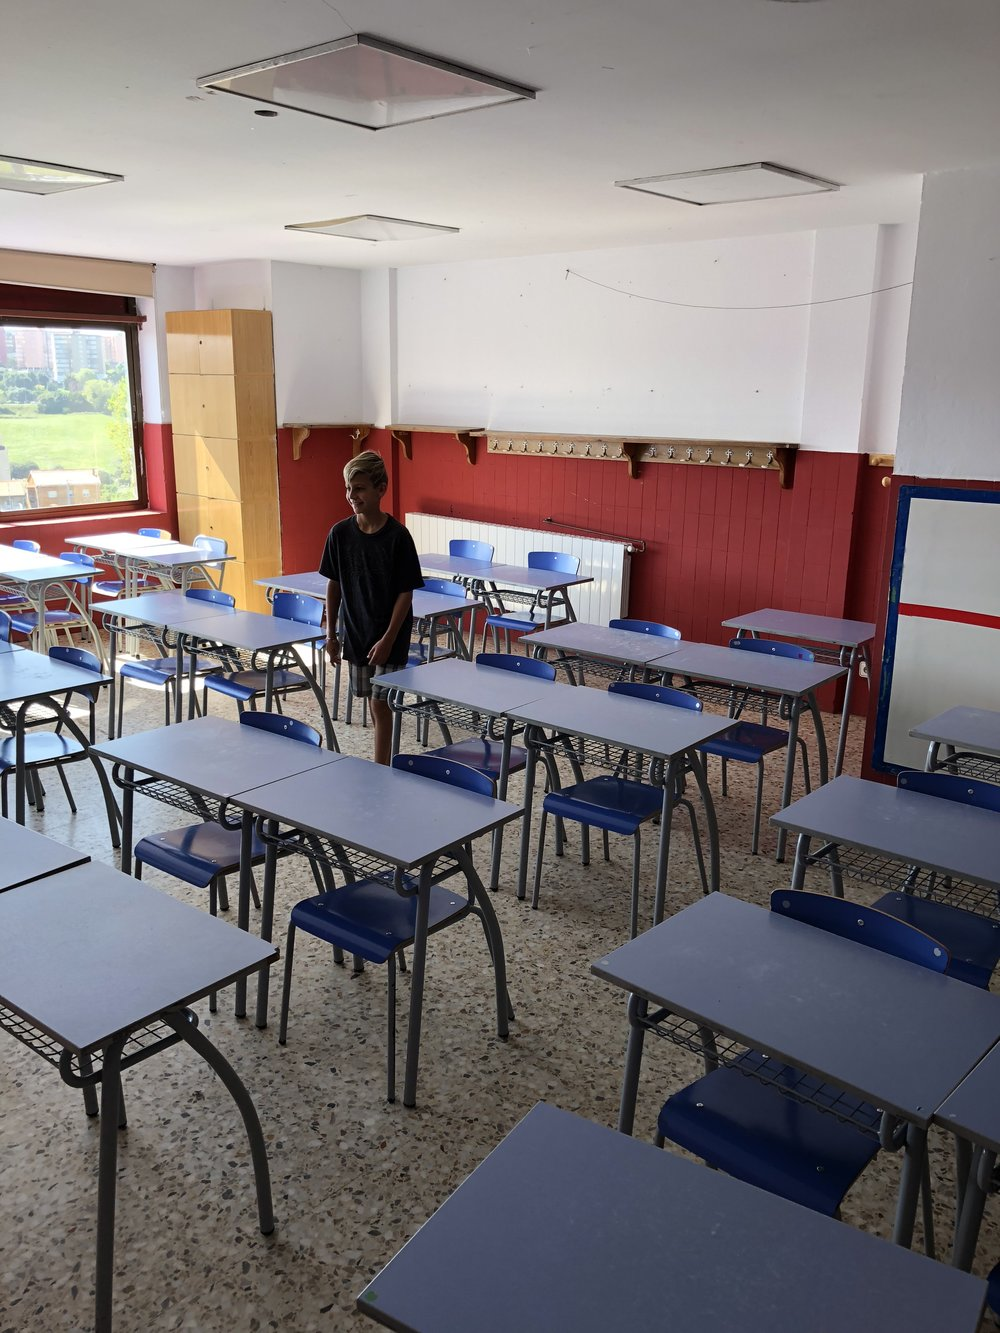 Before school started - This is Spider's classroom